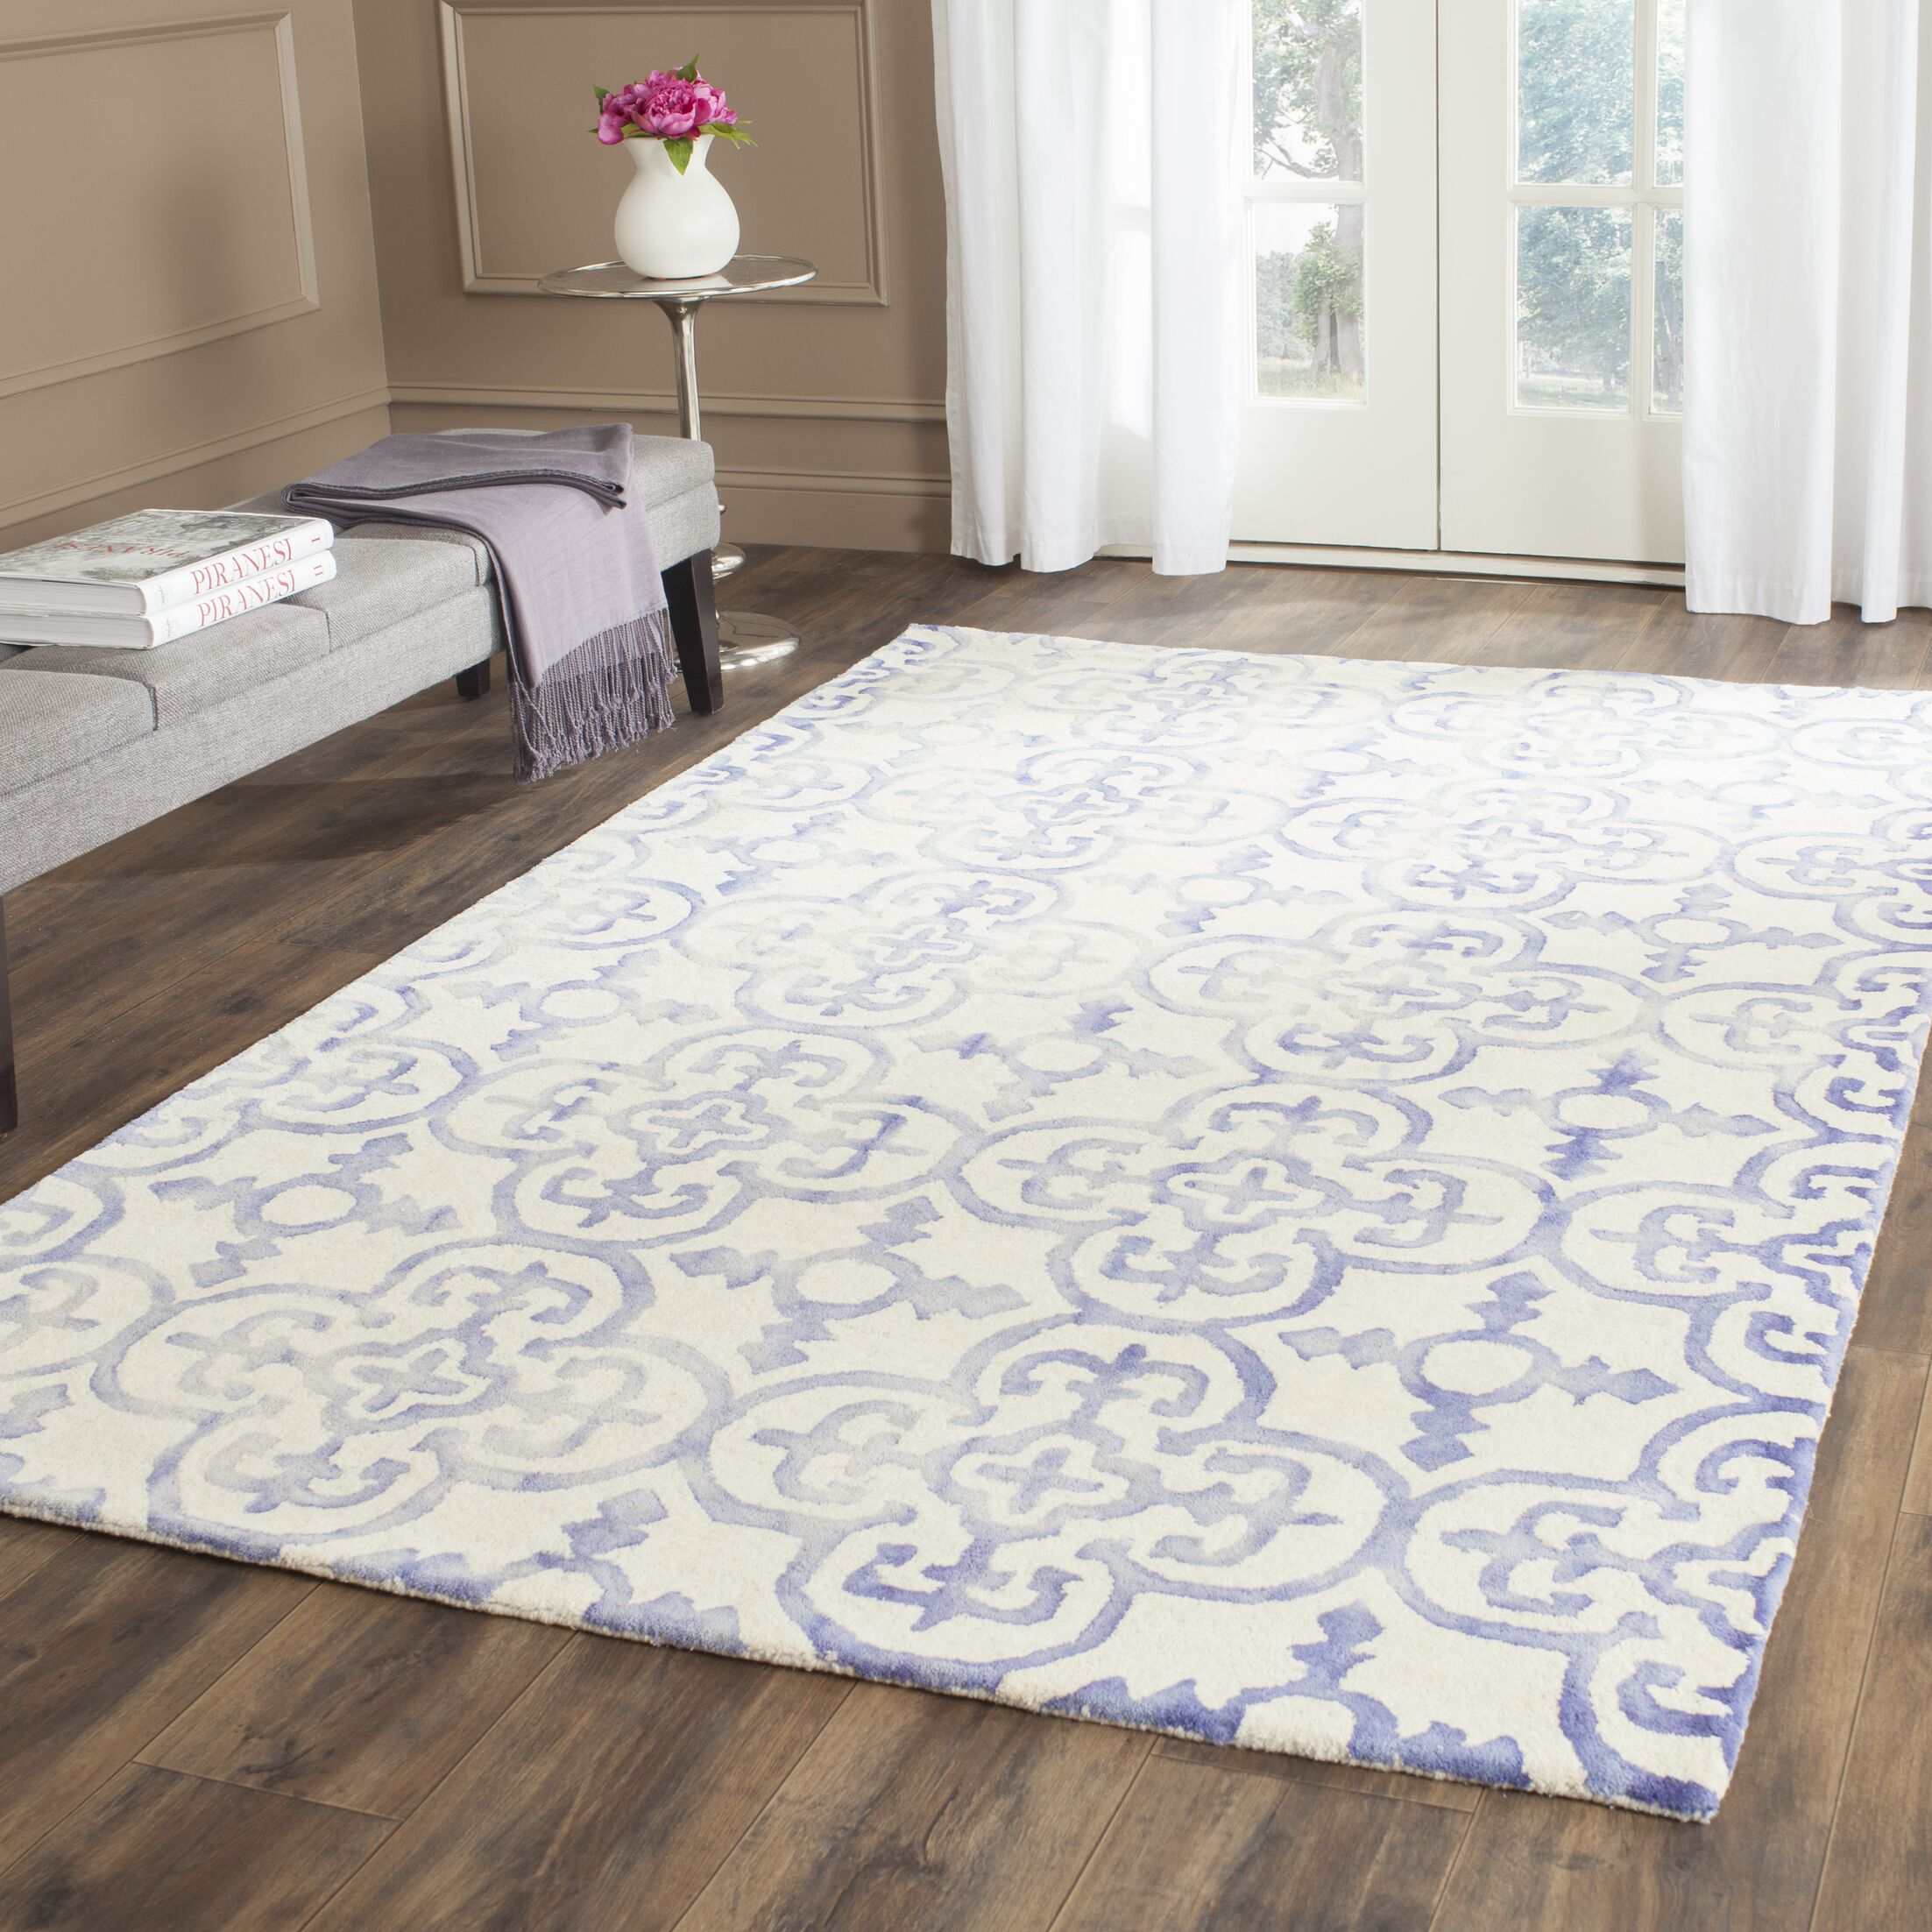 Carter Hand-Tufted Ivory/Blue Area Rug Rug Size: Rectangle 9' x 12'